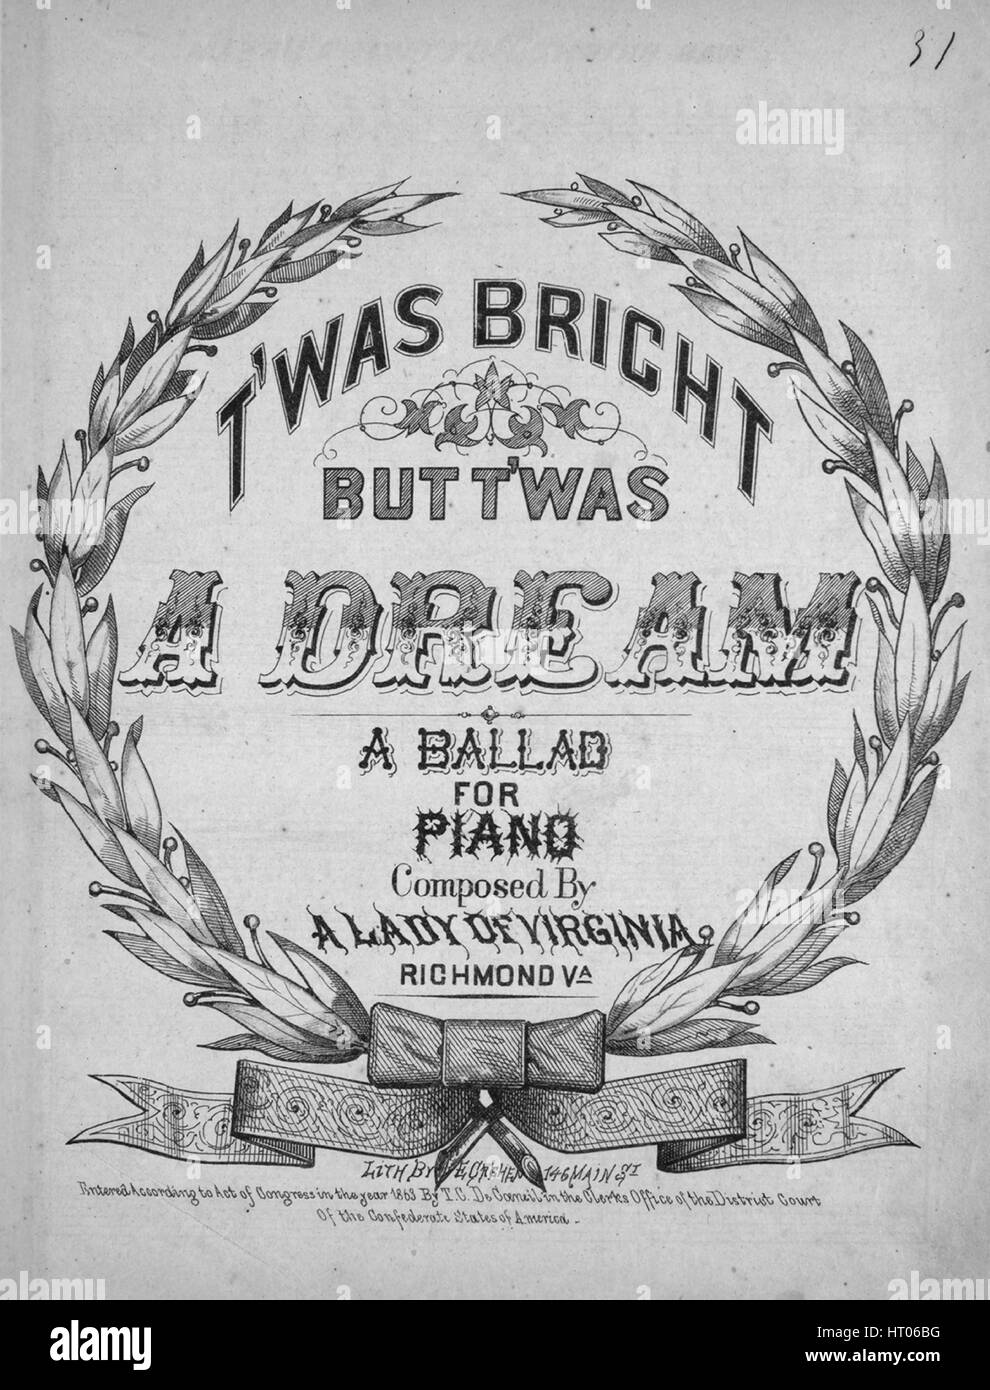 5c1478c21f04 Sheet music cover image of the song 'T'was Bright, But T'